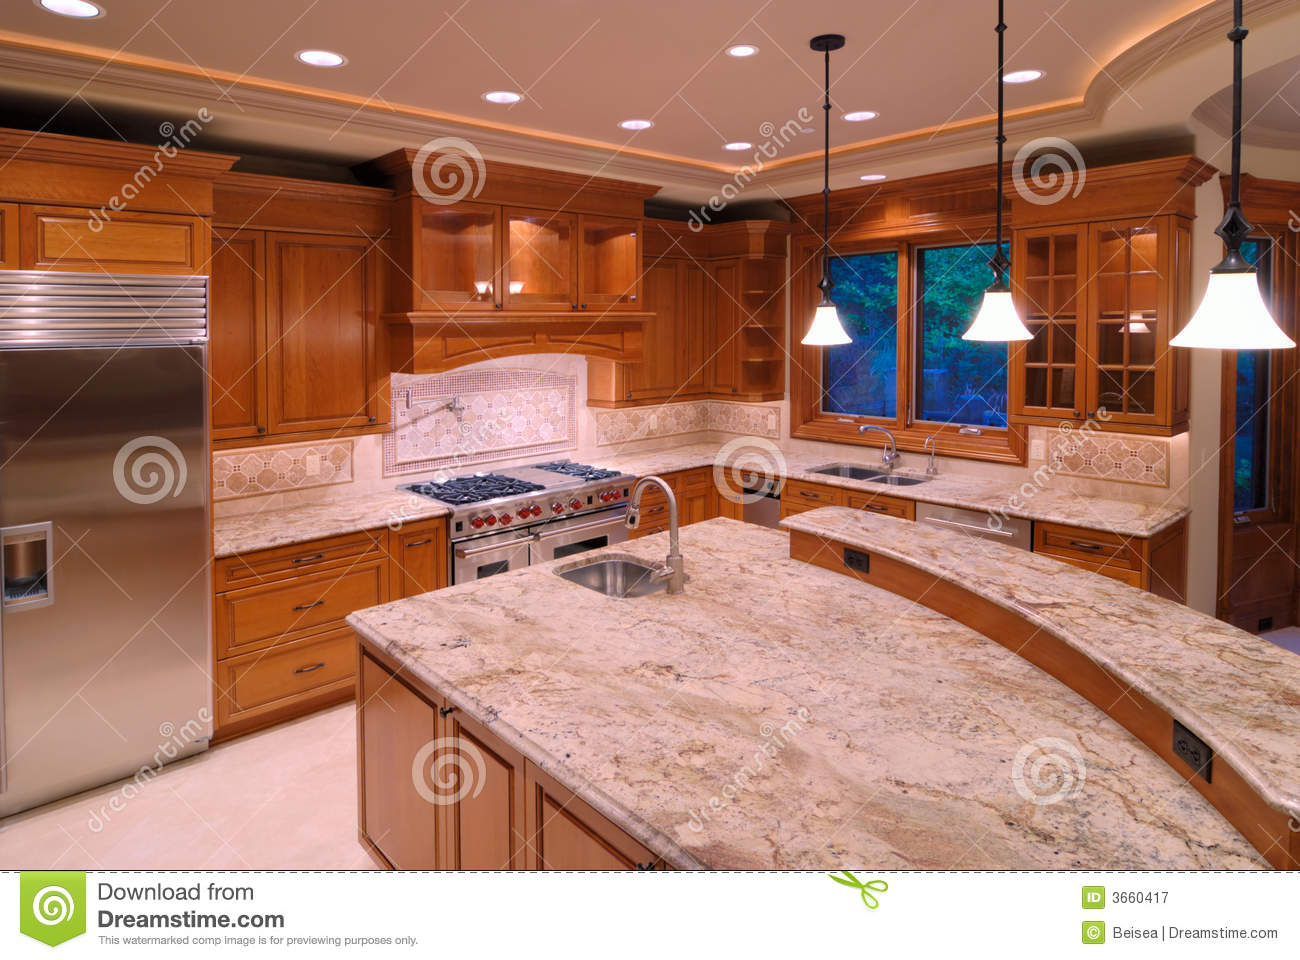 American kitchens stock image image of mansion ceiling for Cuisines americaines de luxe